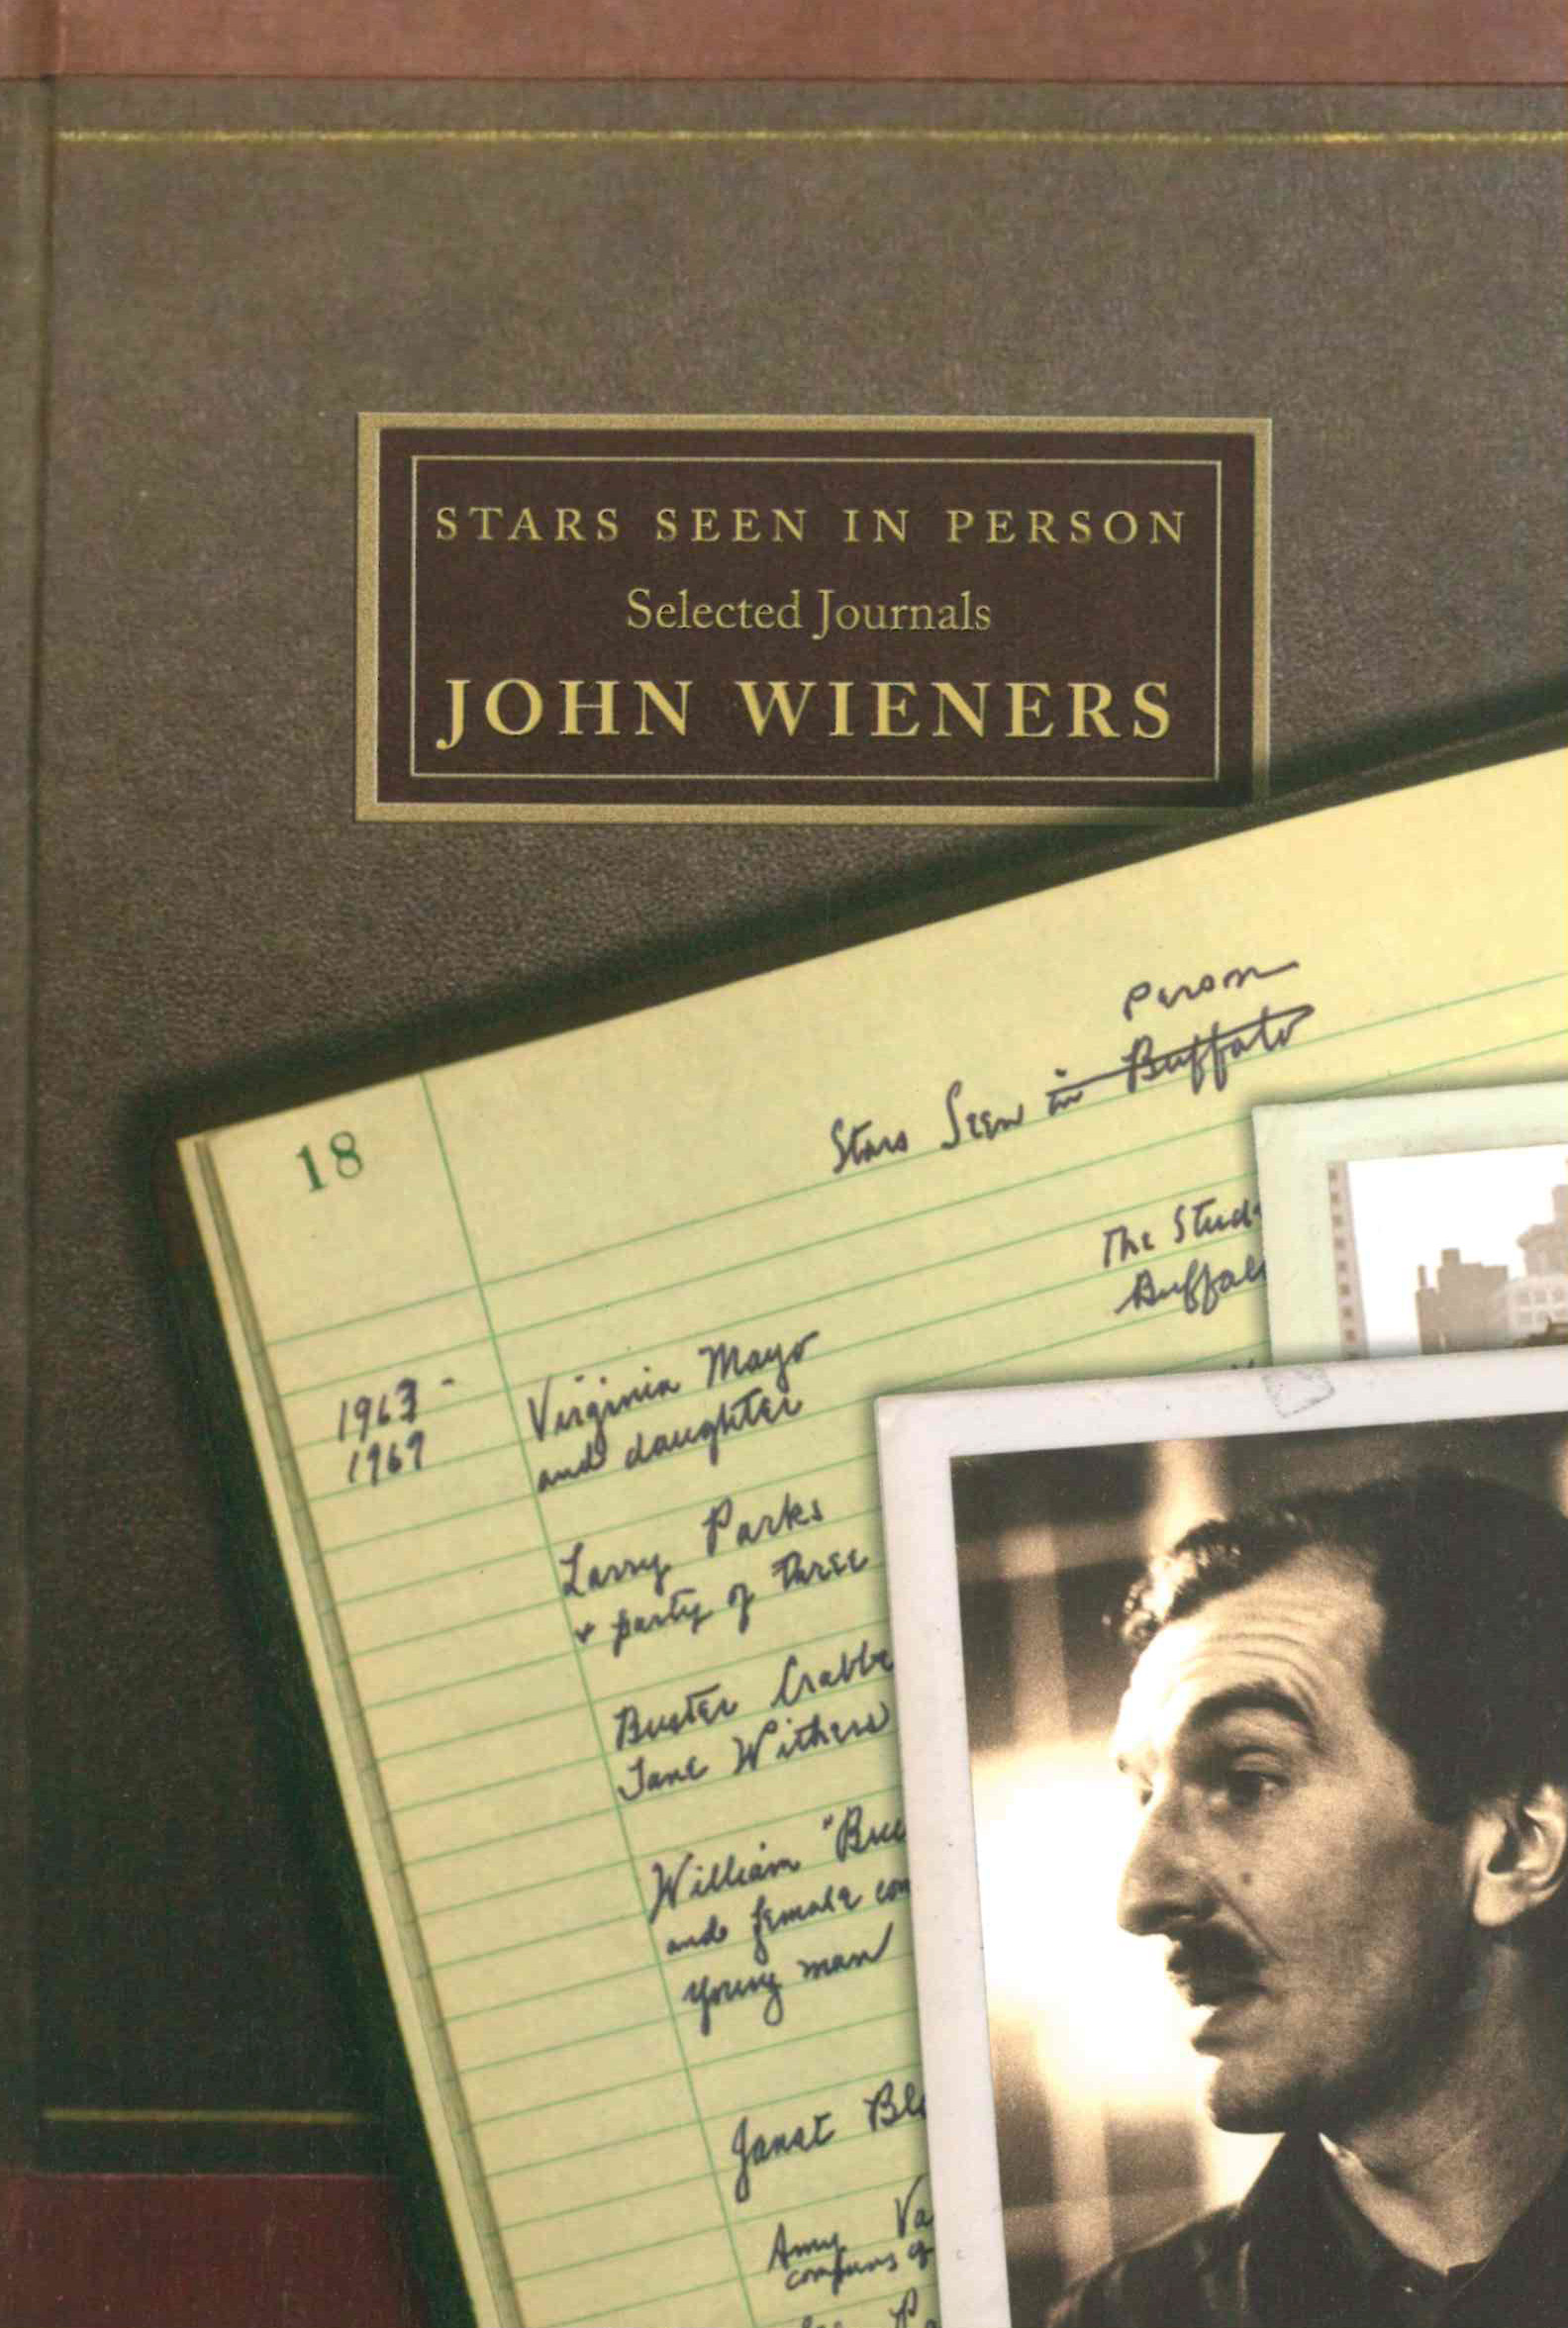 Stars Seen in Person: Selected Journals of John Wieners